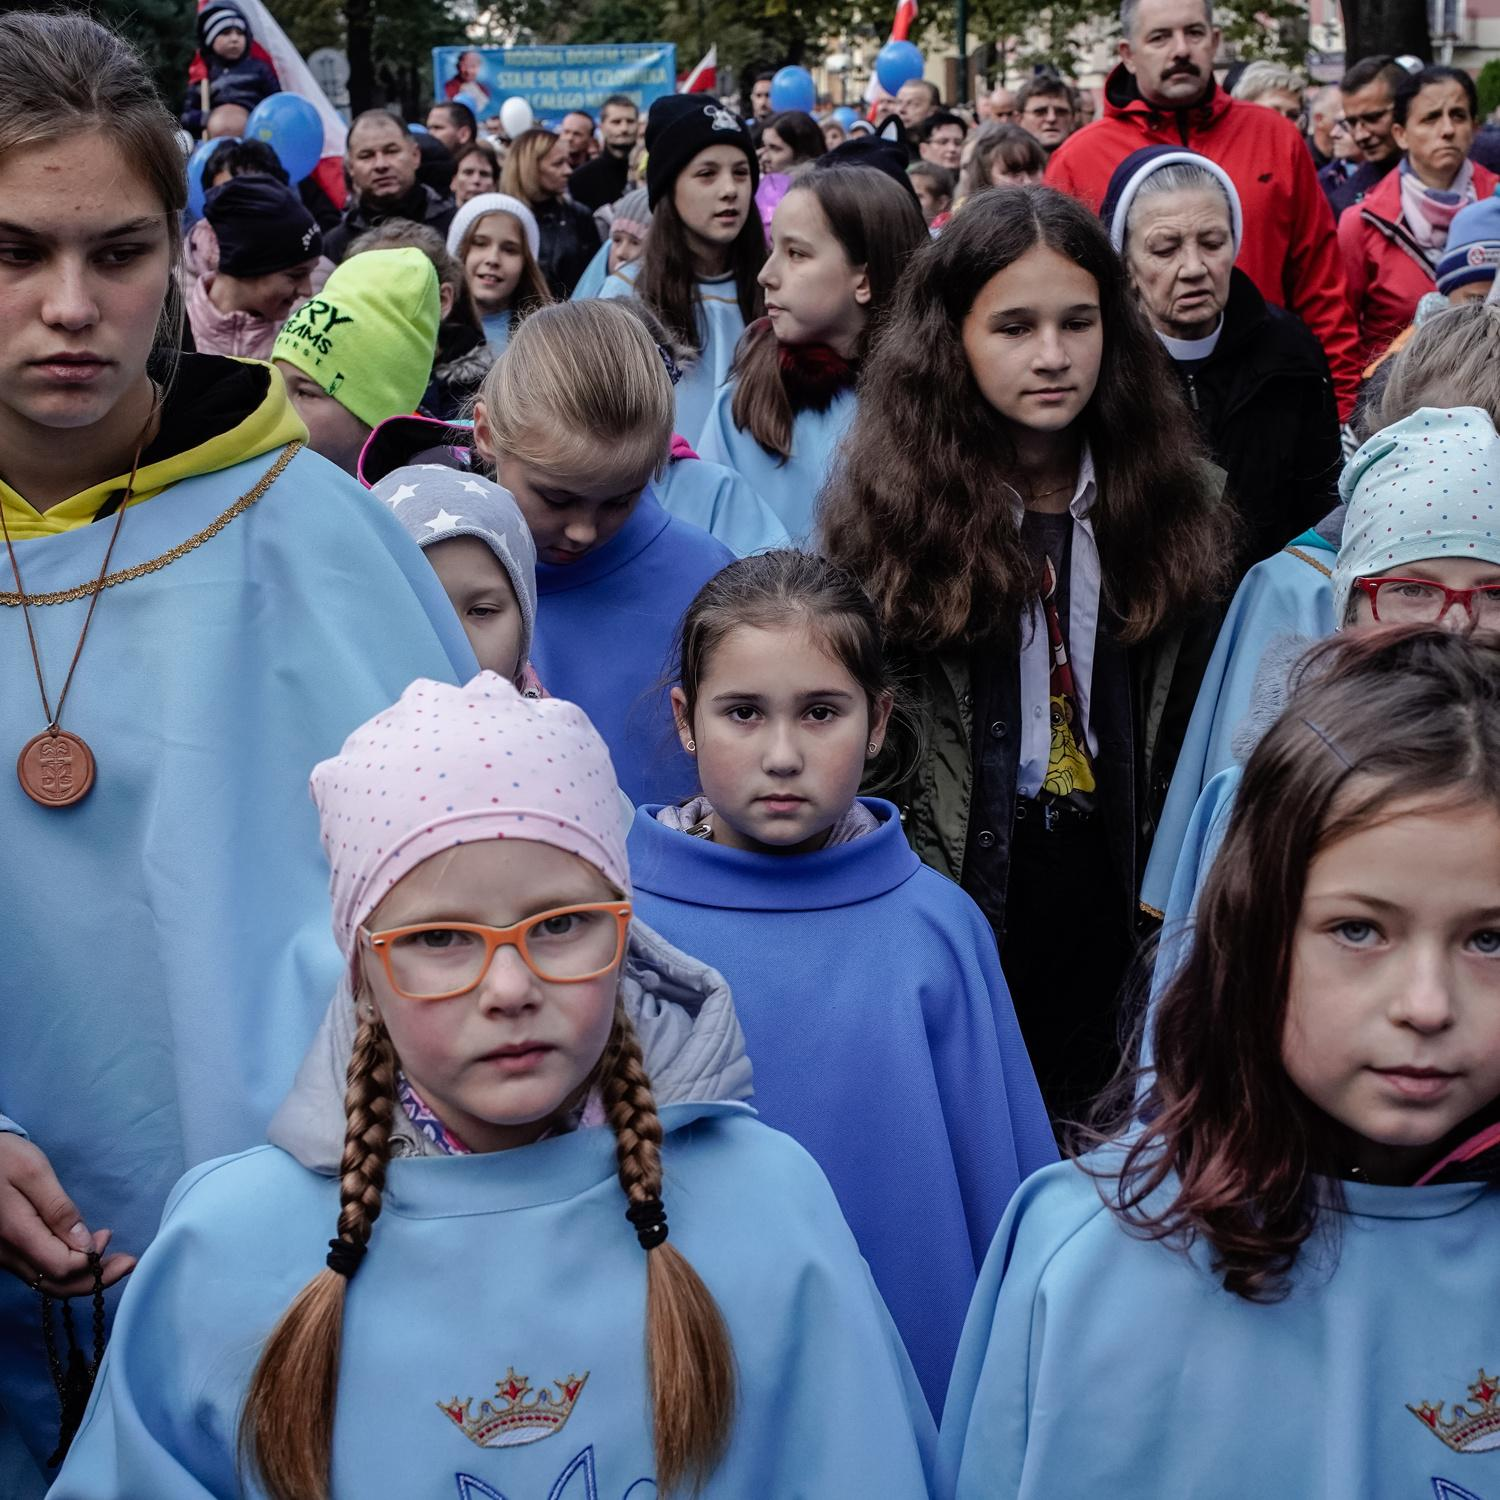 Catholic march For Life and The Family. Nowy Sacz, Poland, October 2019